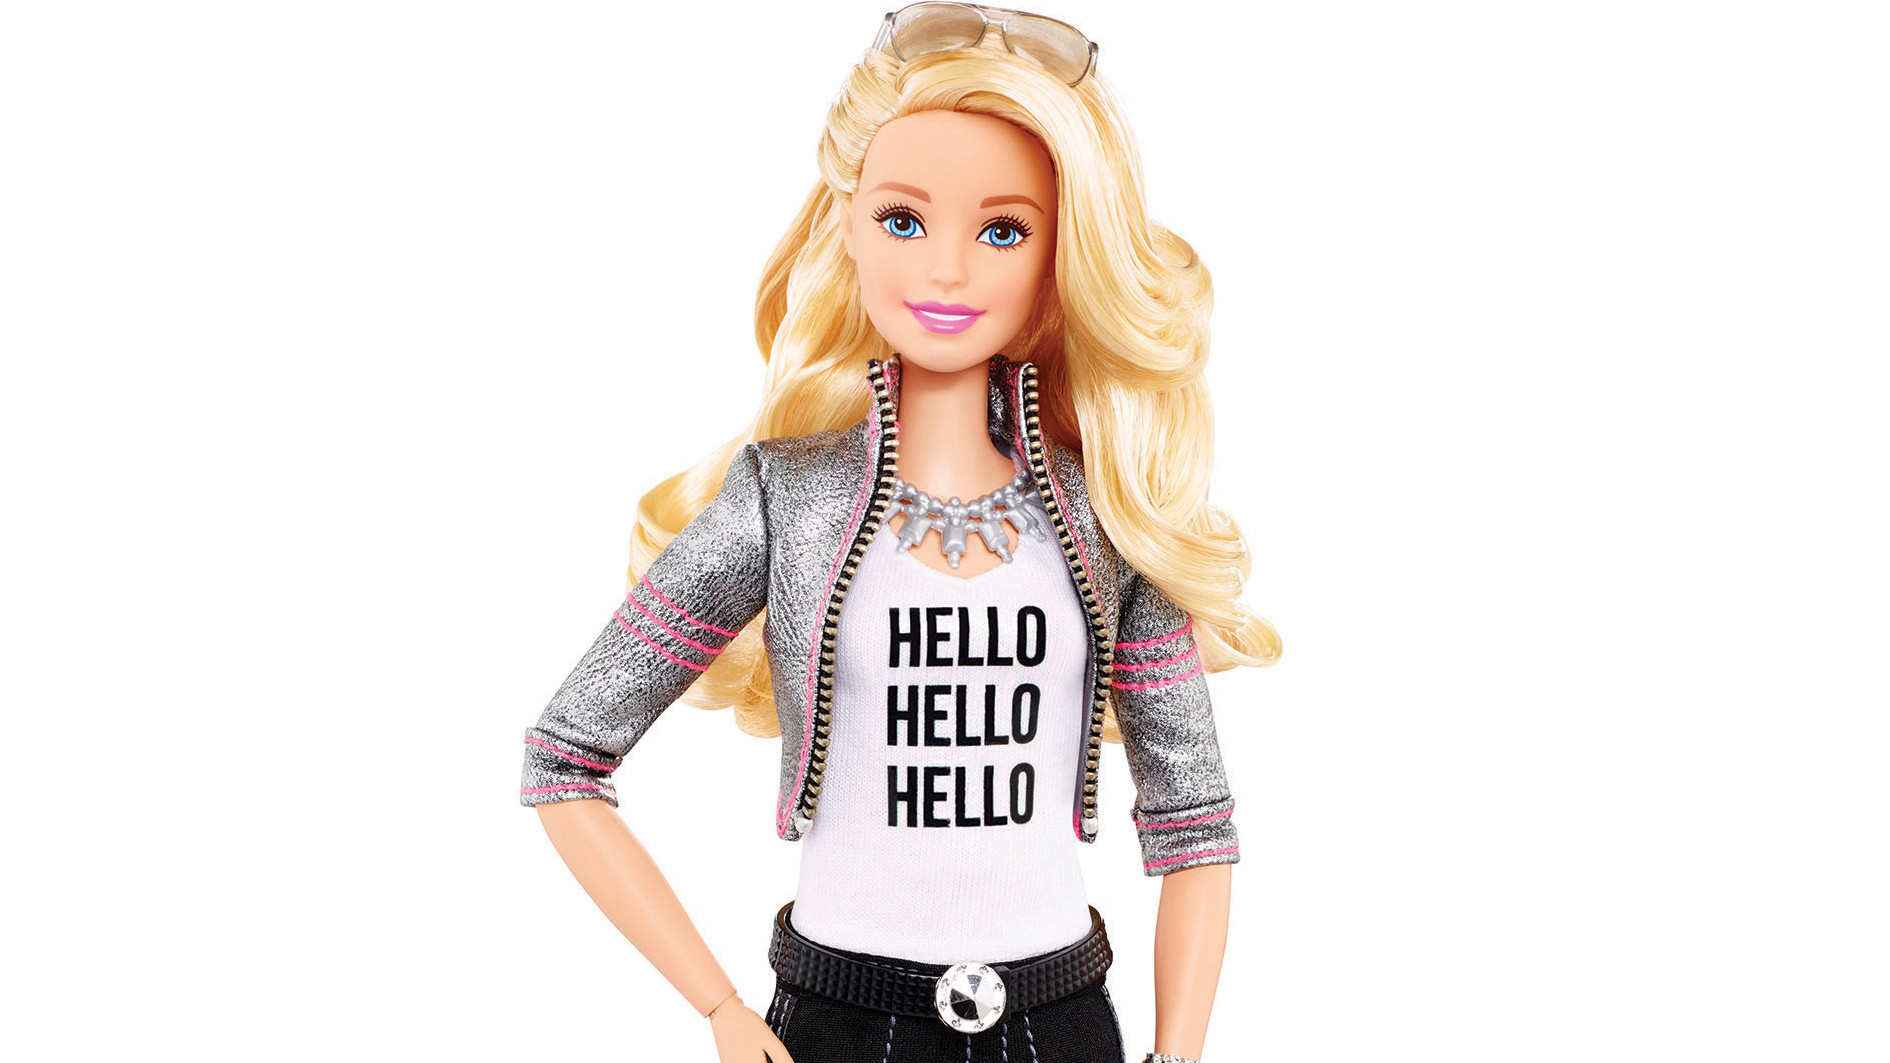 Hello Barbie, goodbye privacy